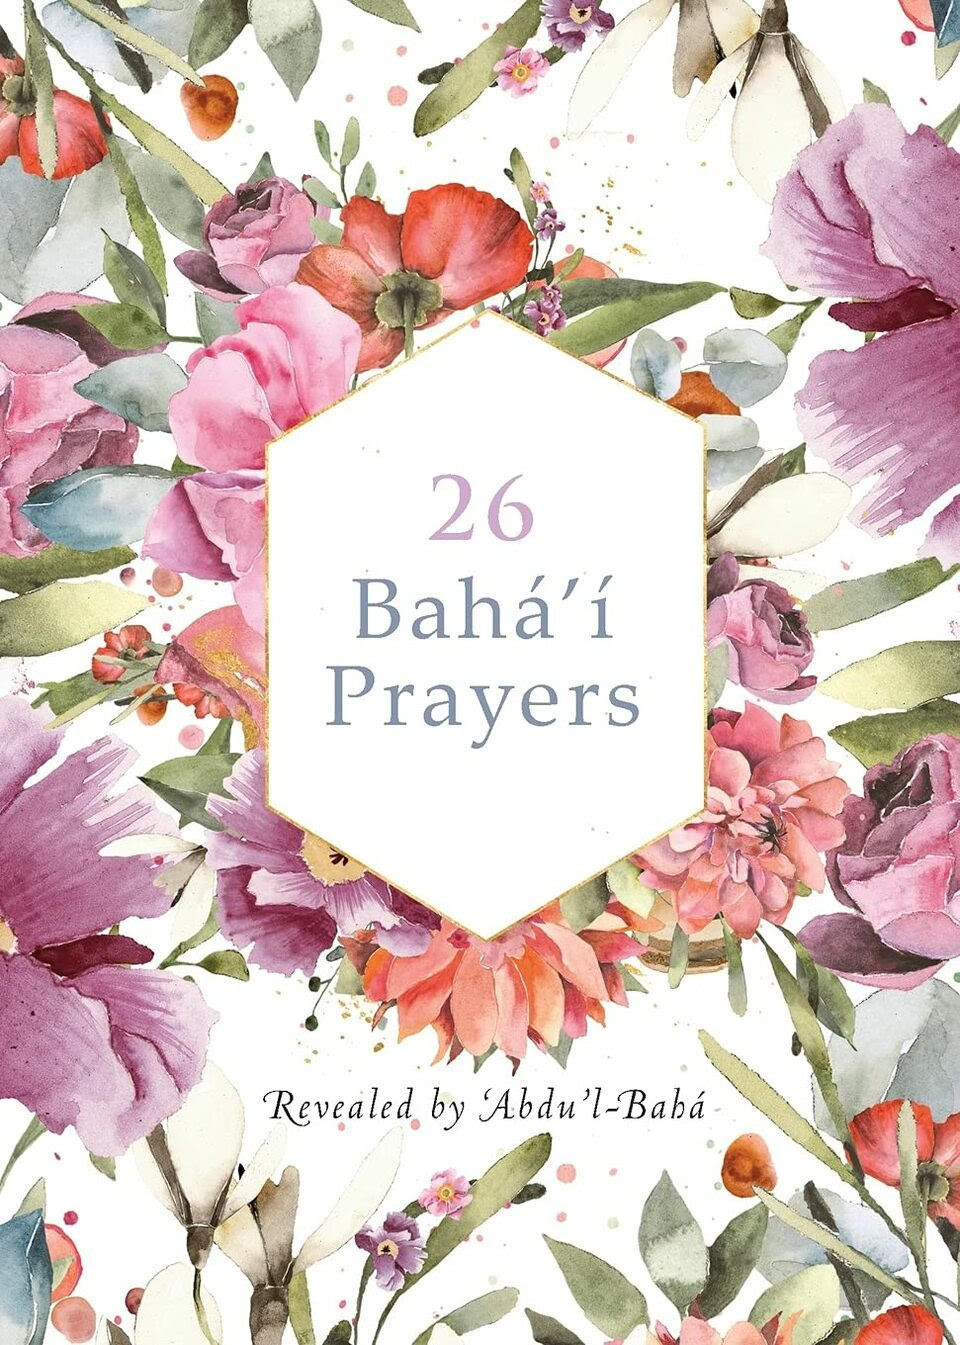 """an image of watercolor flowers are behind a shape that says """"26 Baha'i Prayers"""" on it in pastel writing"""